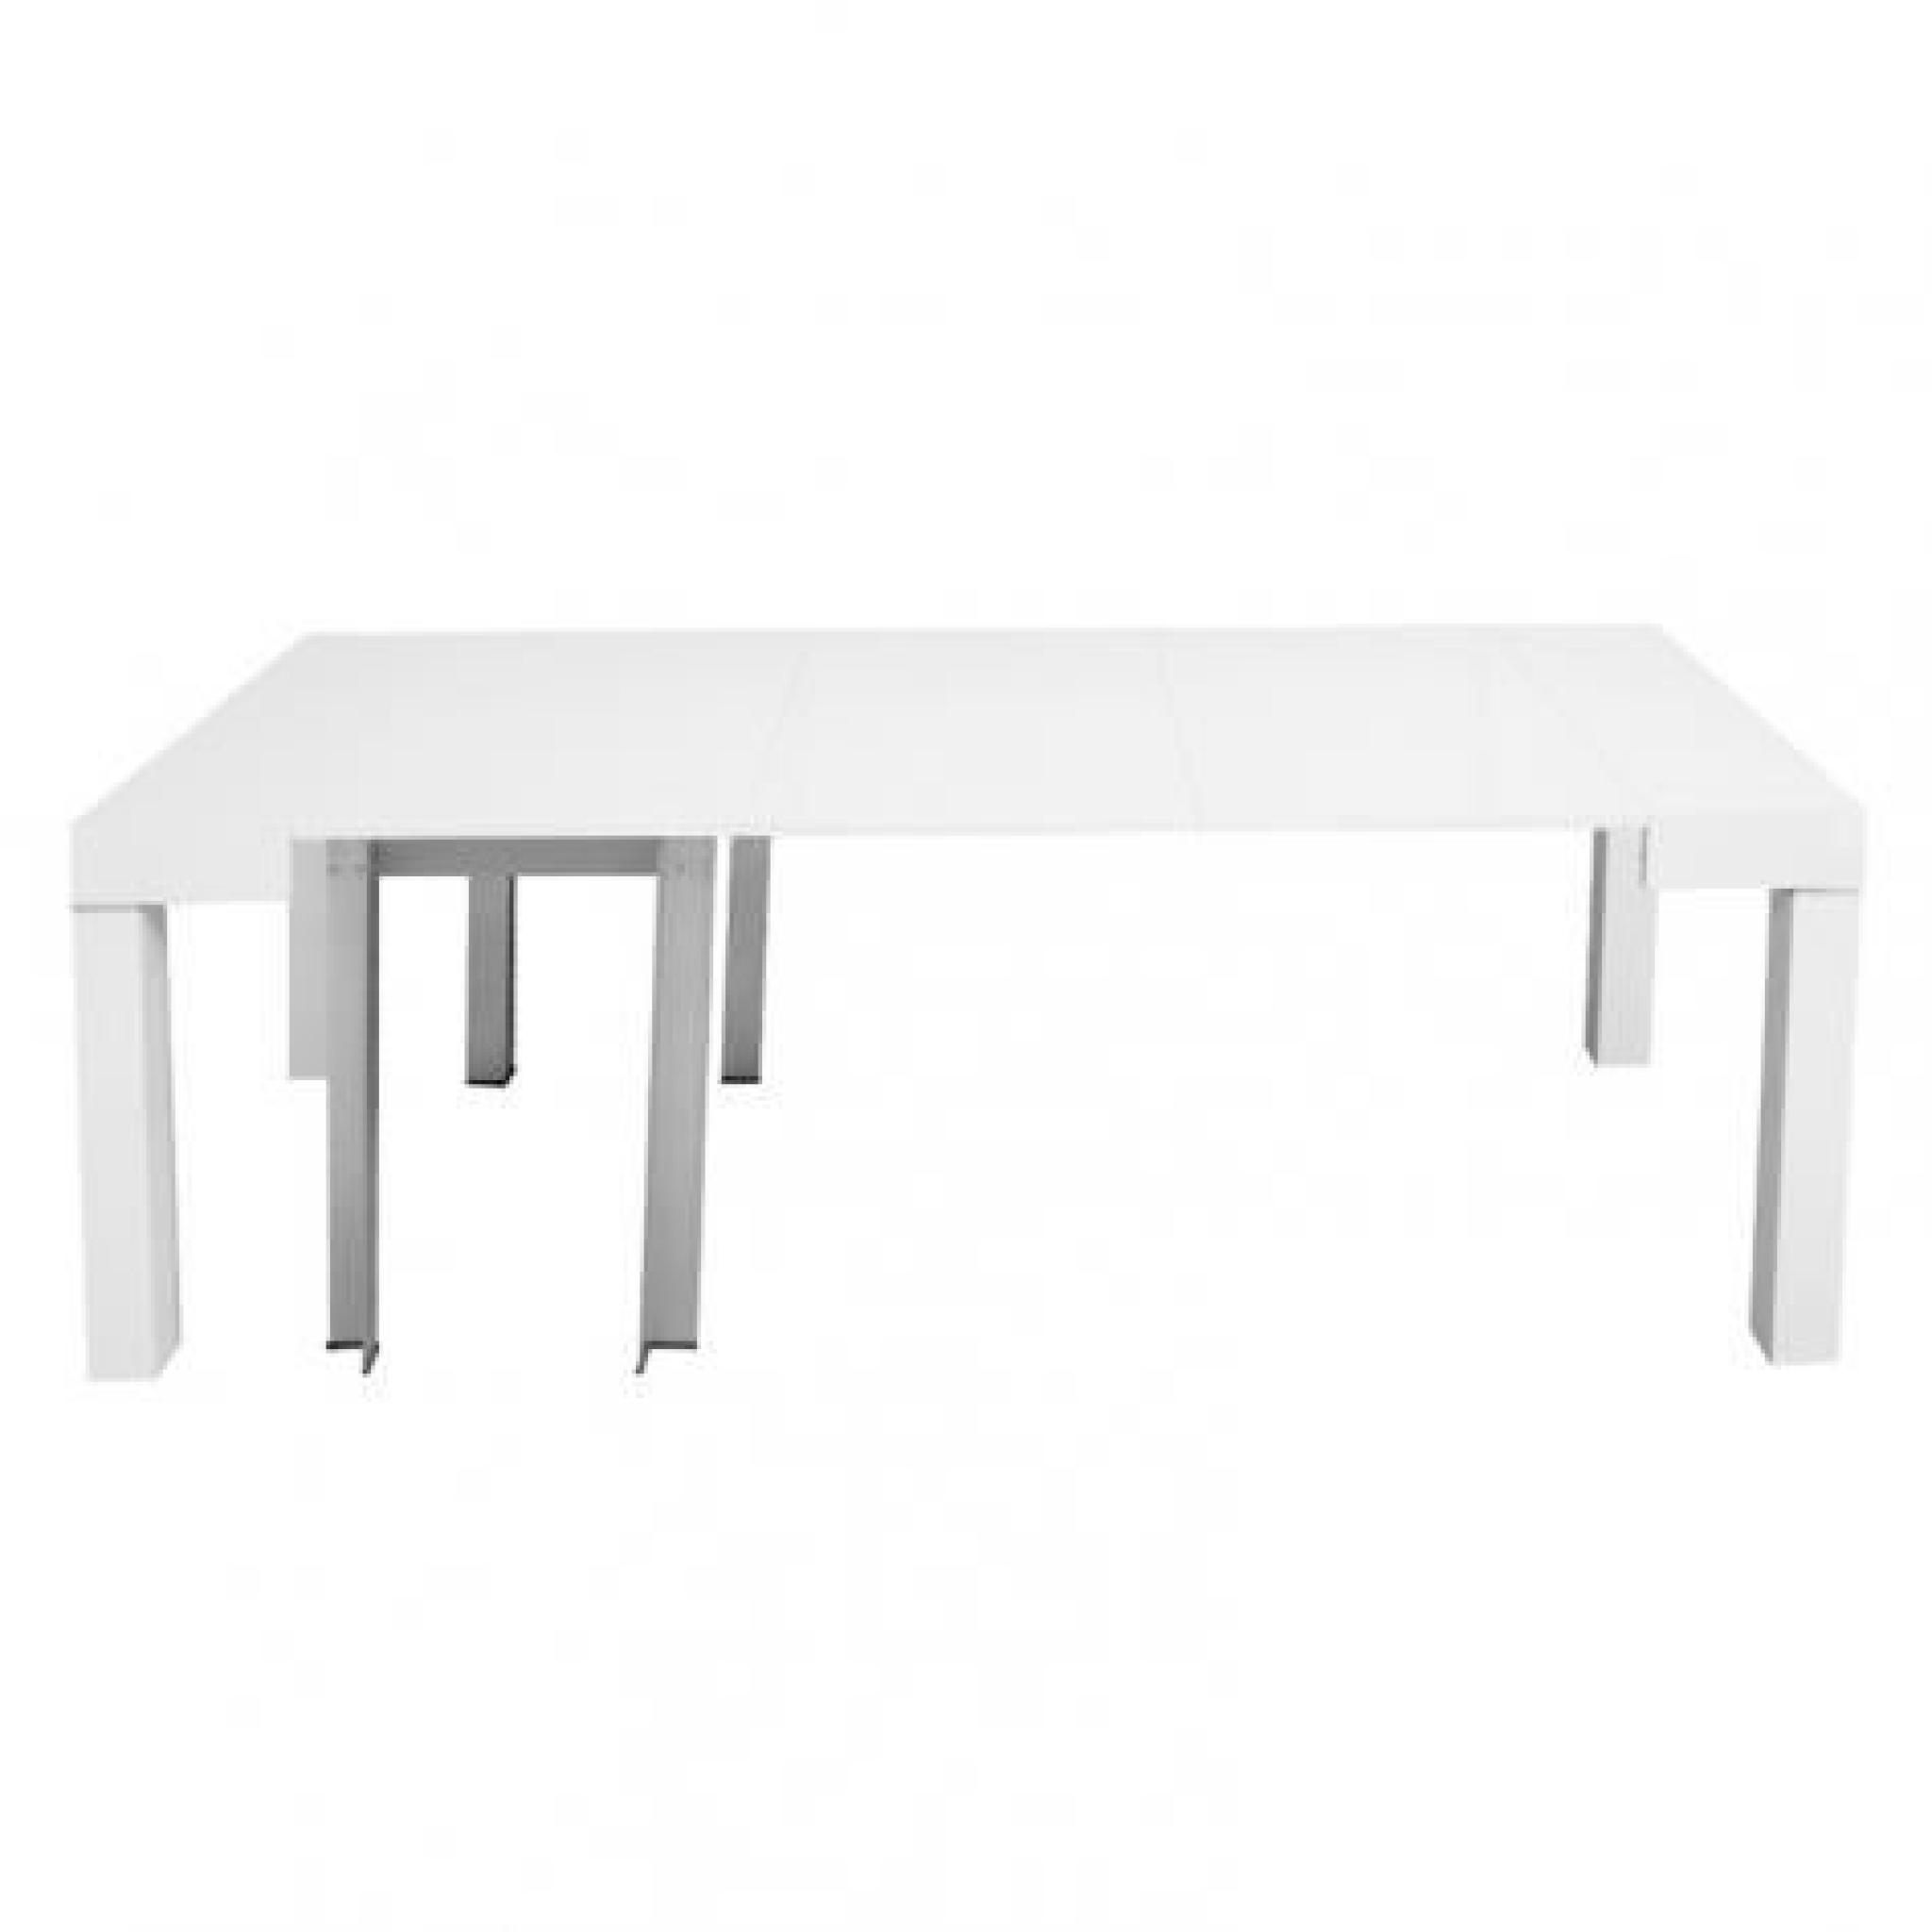 Table console extensible blanche laqu e 4 rallonges alesia for Table a manger blanche extensible